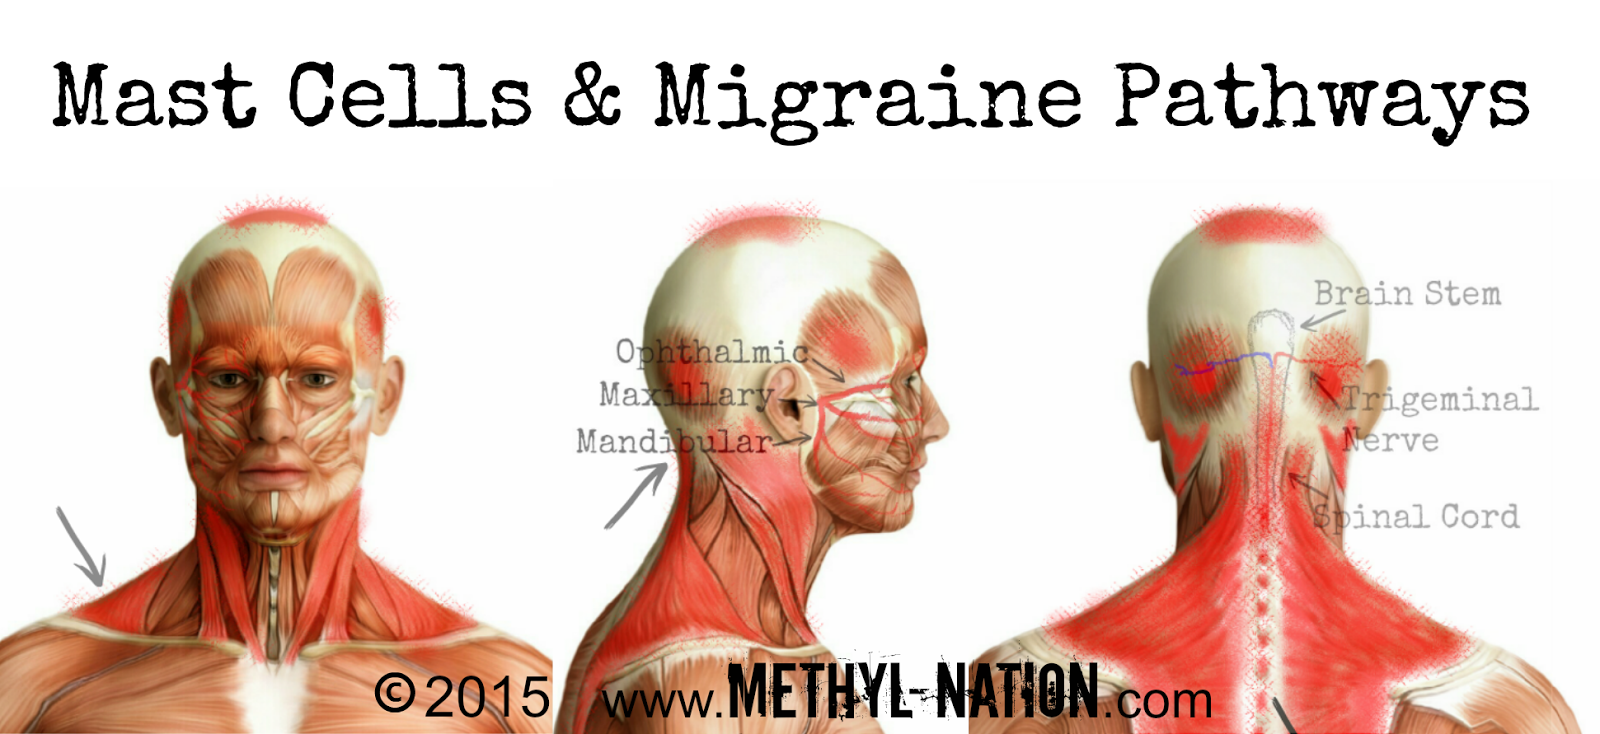 http://www.methyl-nation.com/2015/01/mast-cells-migraine-pathways.html